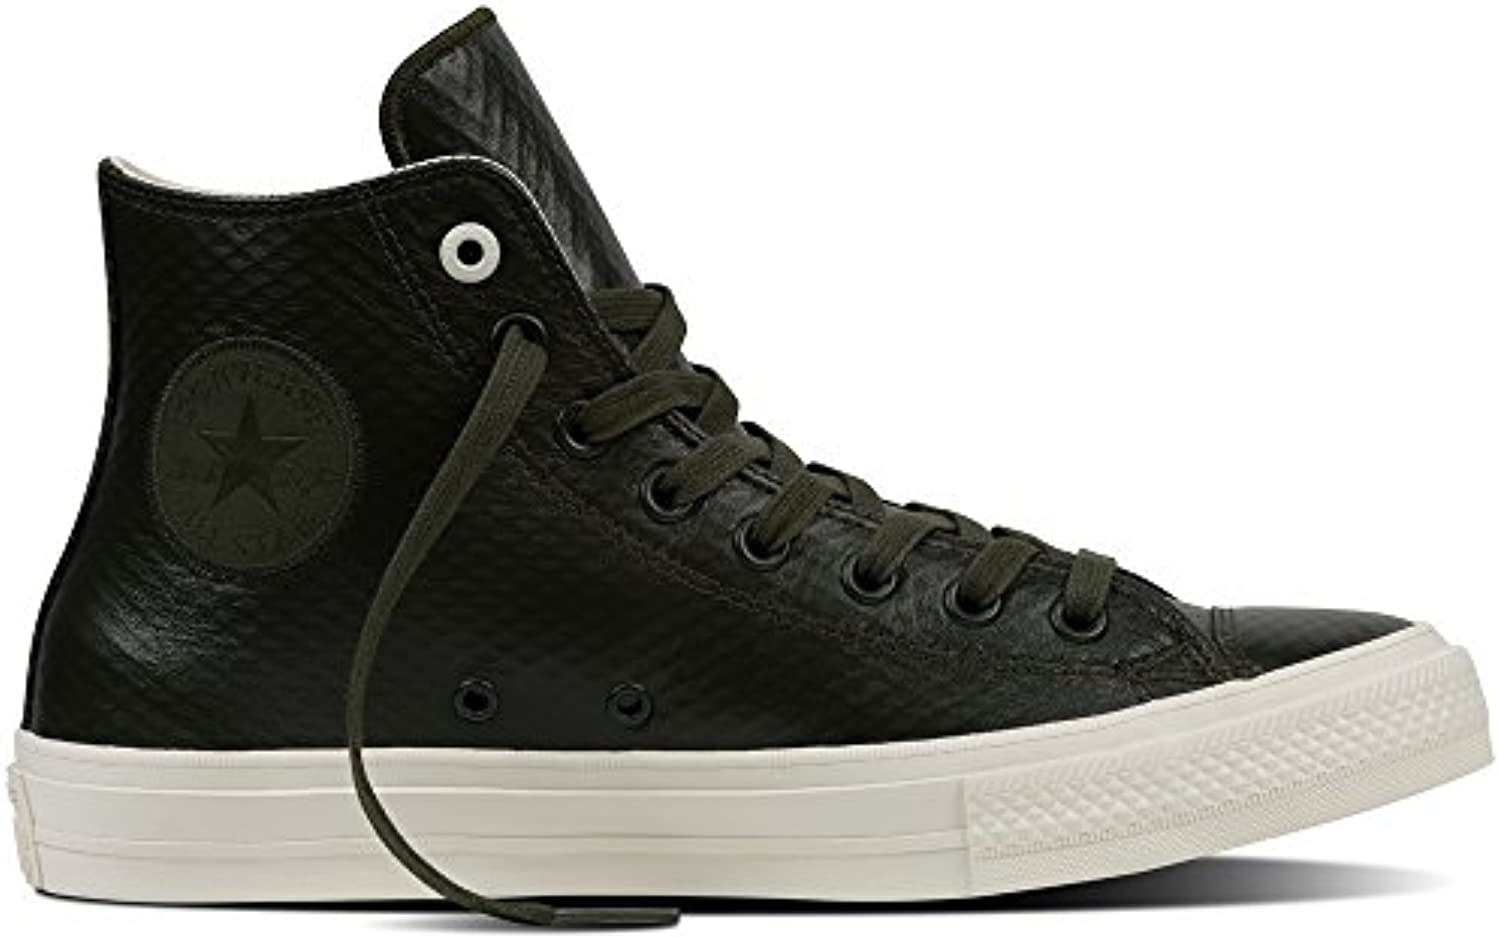 Converse Chuck Taylor All Star II High Leather Sneaker, Hombre